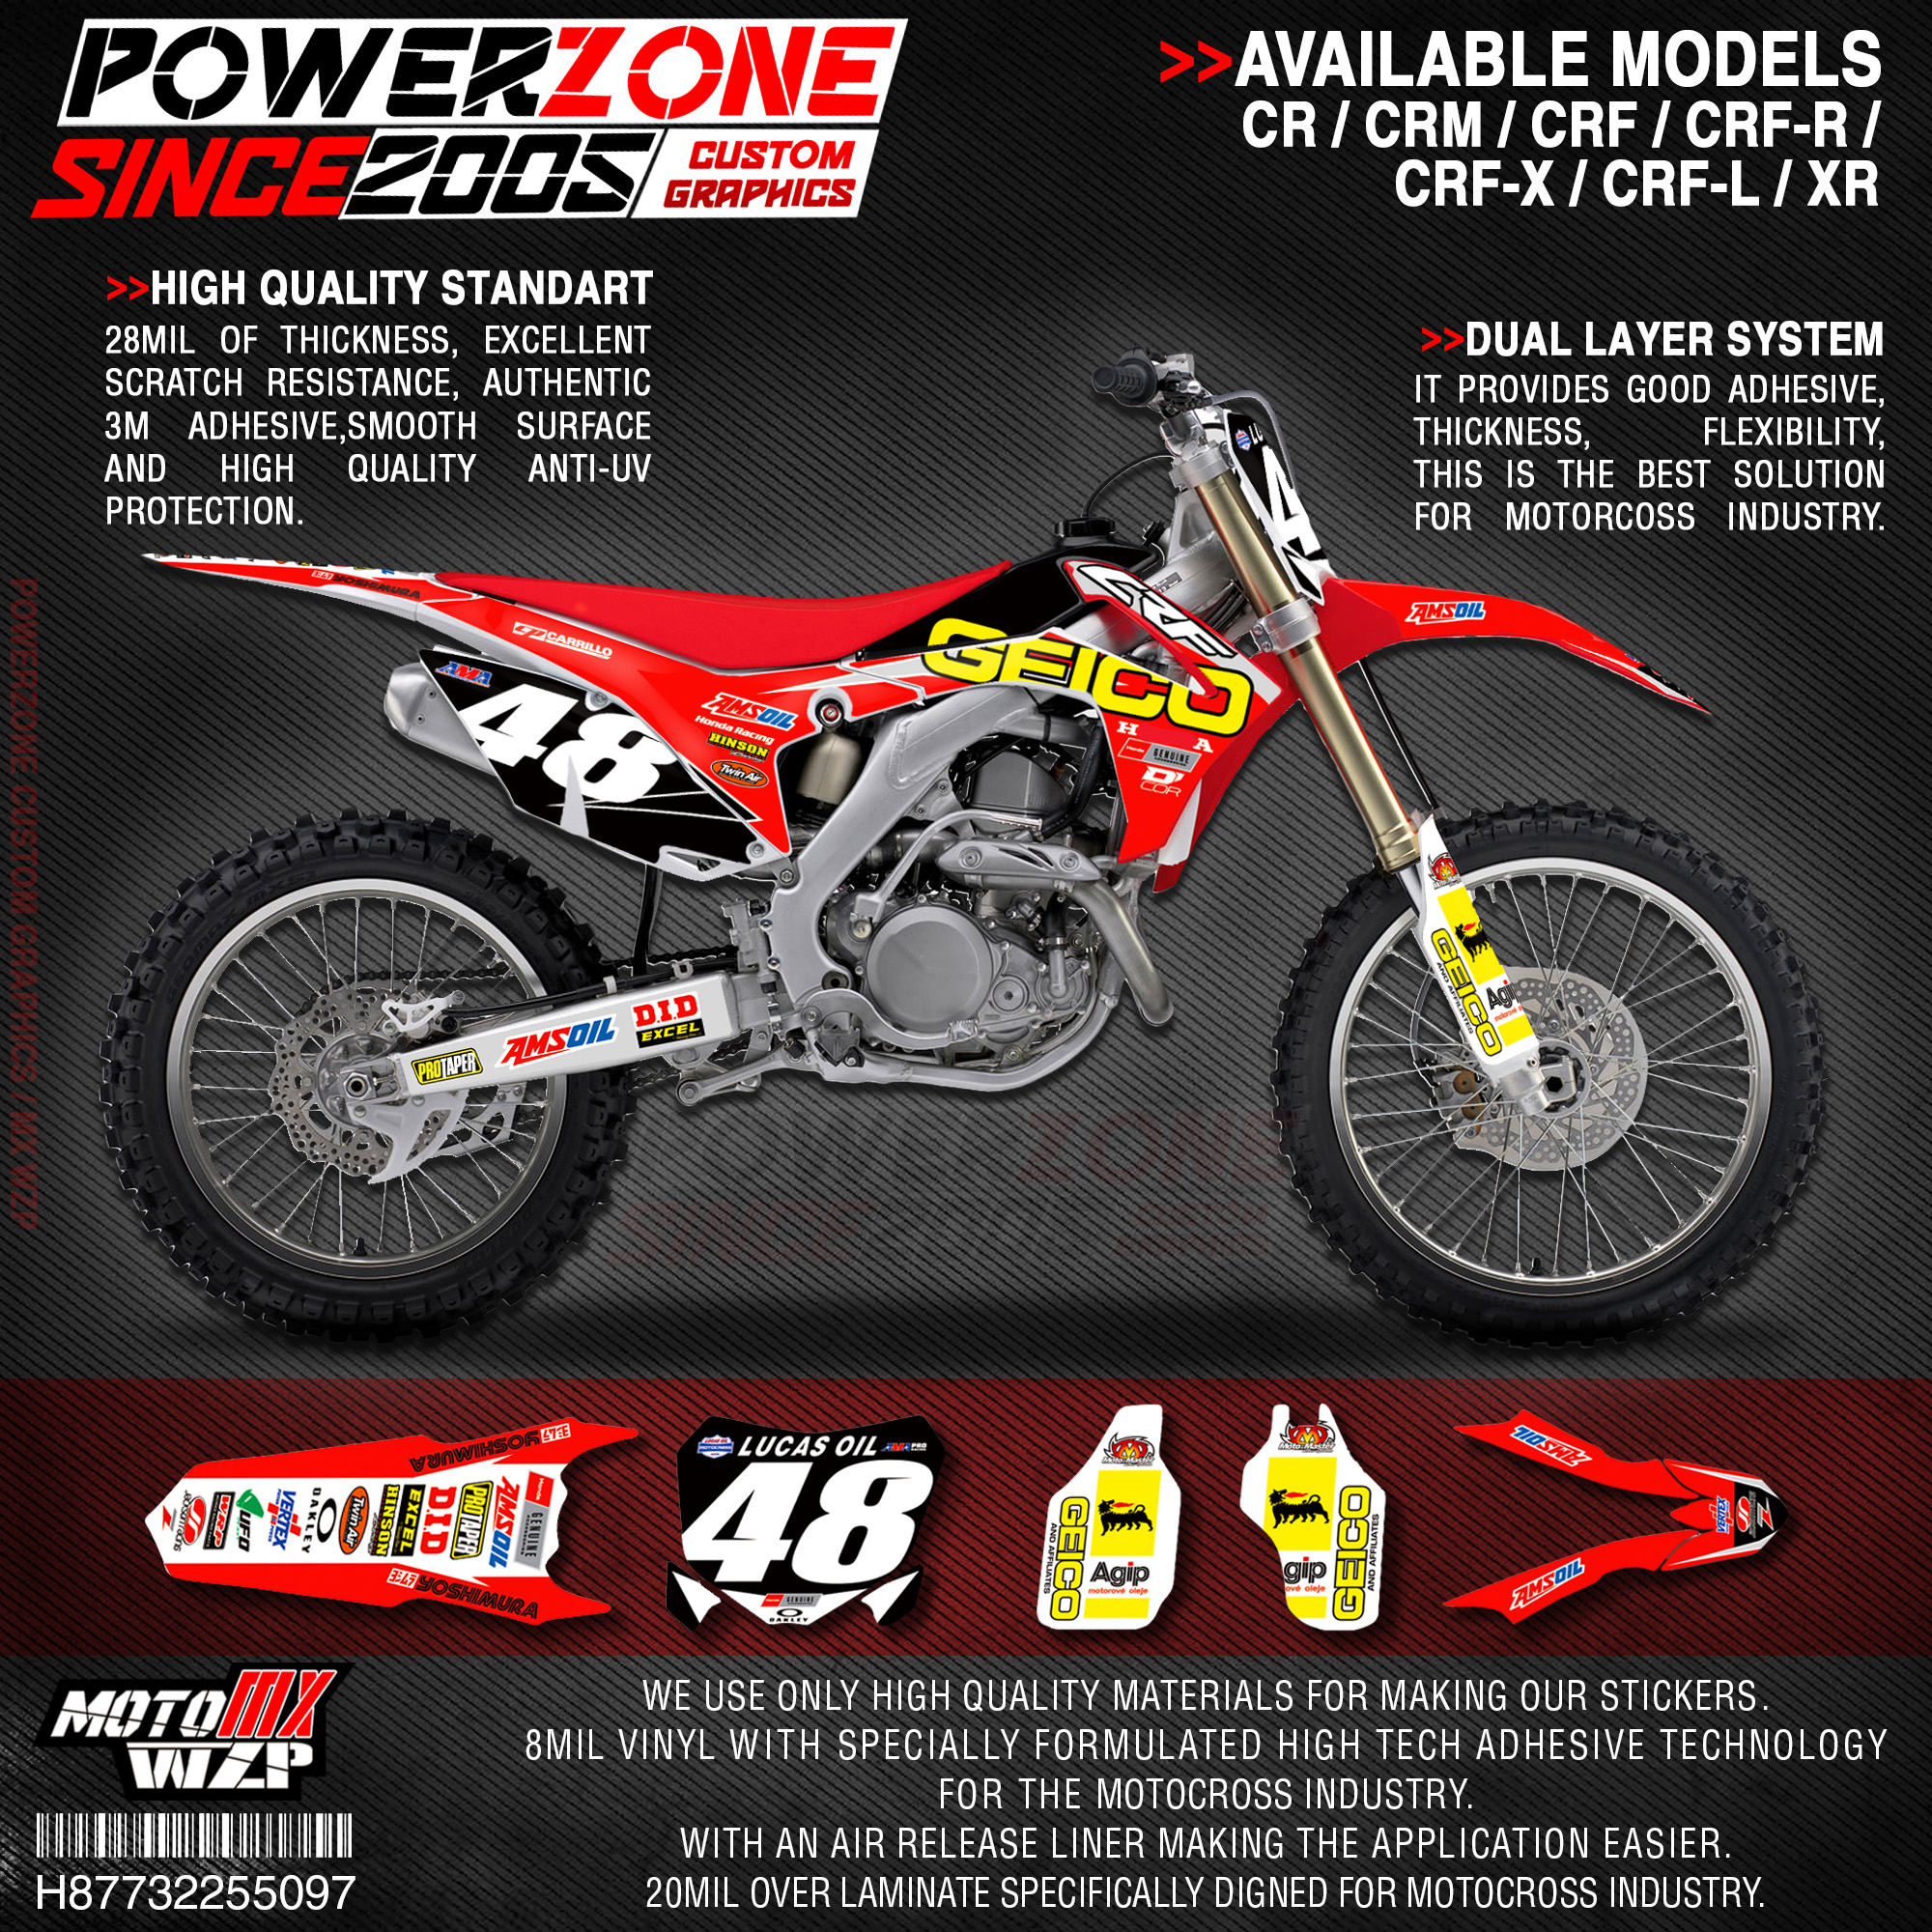 PowerZone Custom Team Graphics Backgrounds Decals 3M Stickers Kit For HONDA CRF250R 2014-2017 CRF450R 2013-2016 097